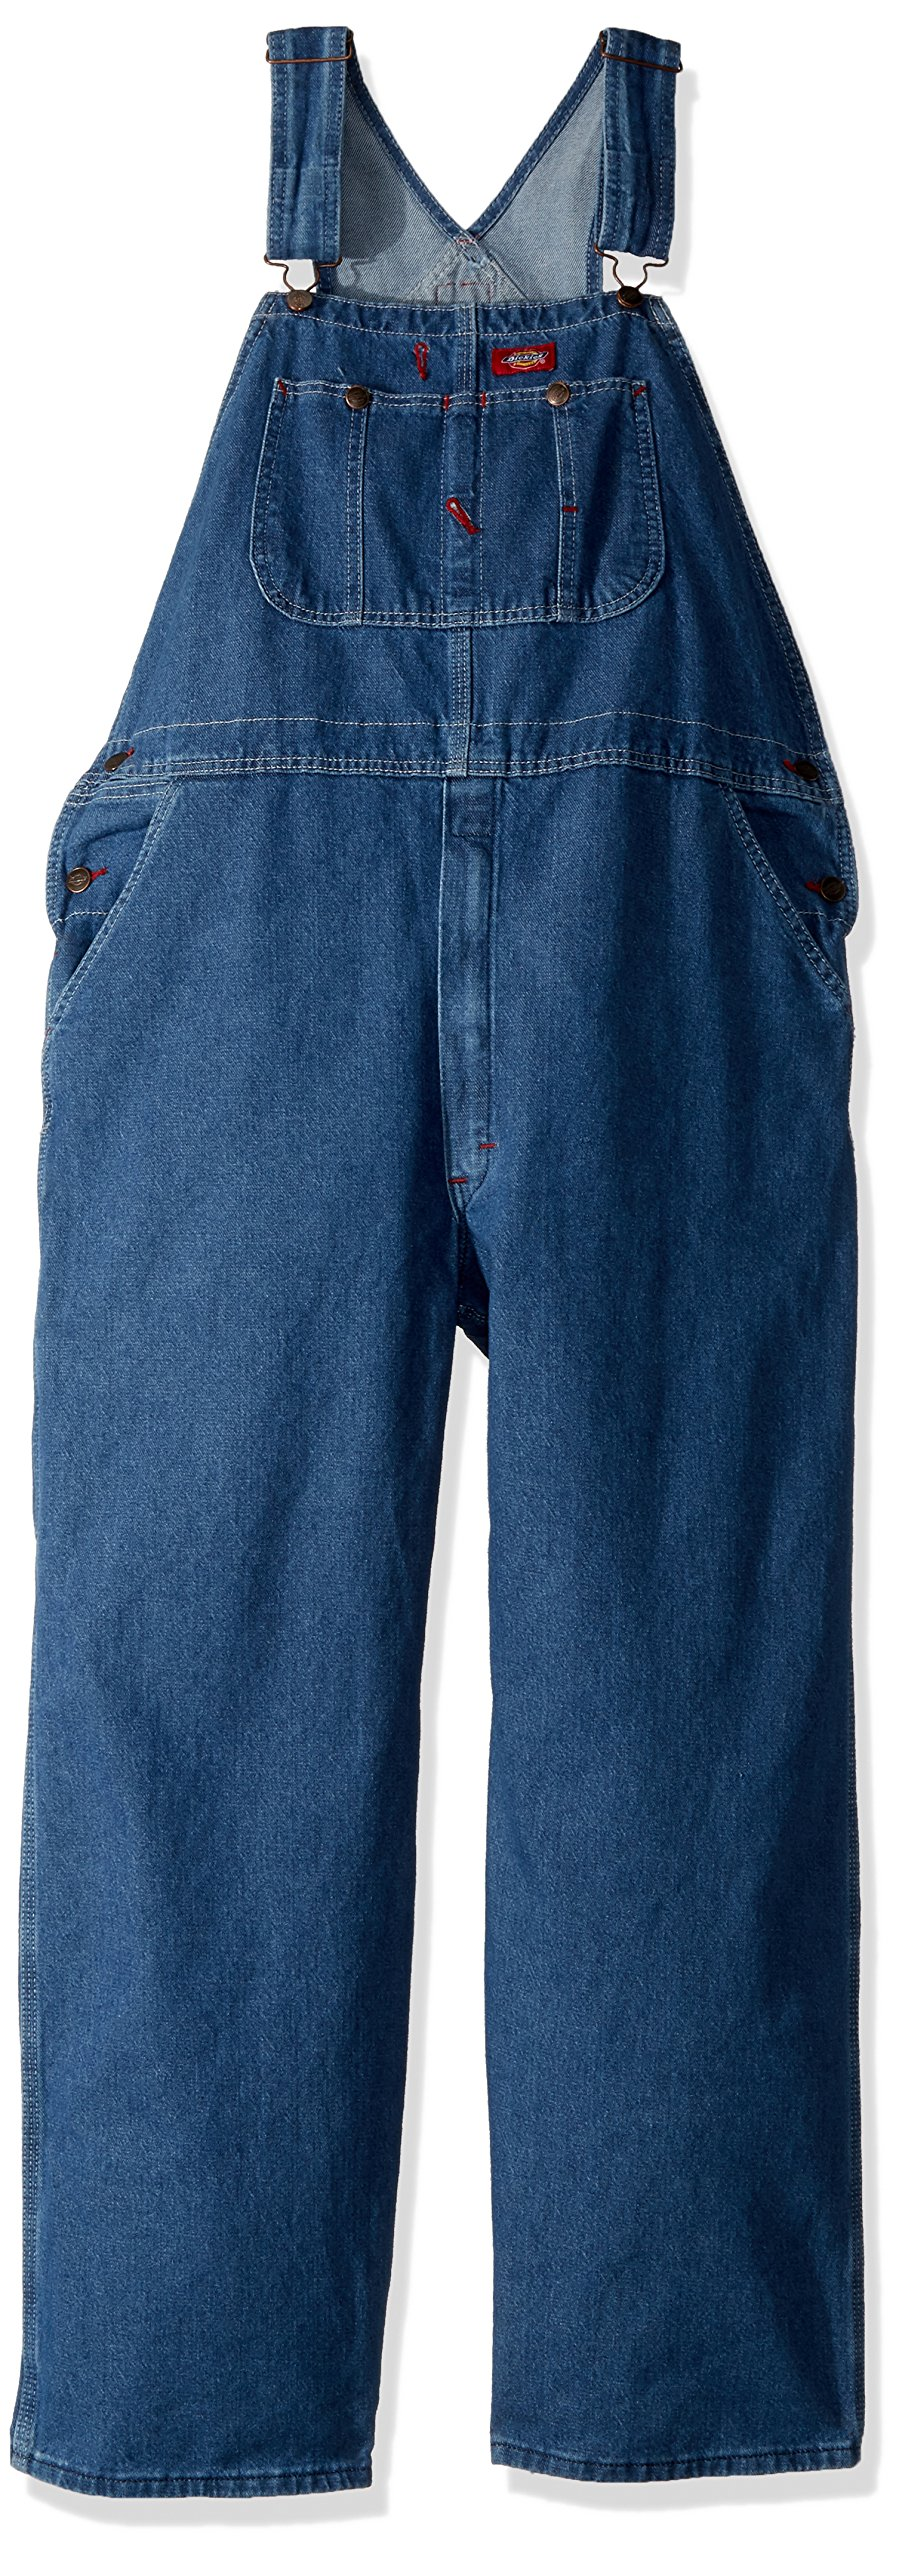 e64eda4338f Galleon - Dickies Men s Denim Bib Overall